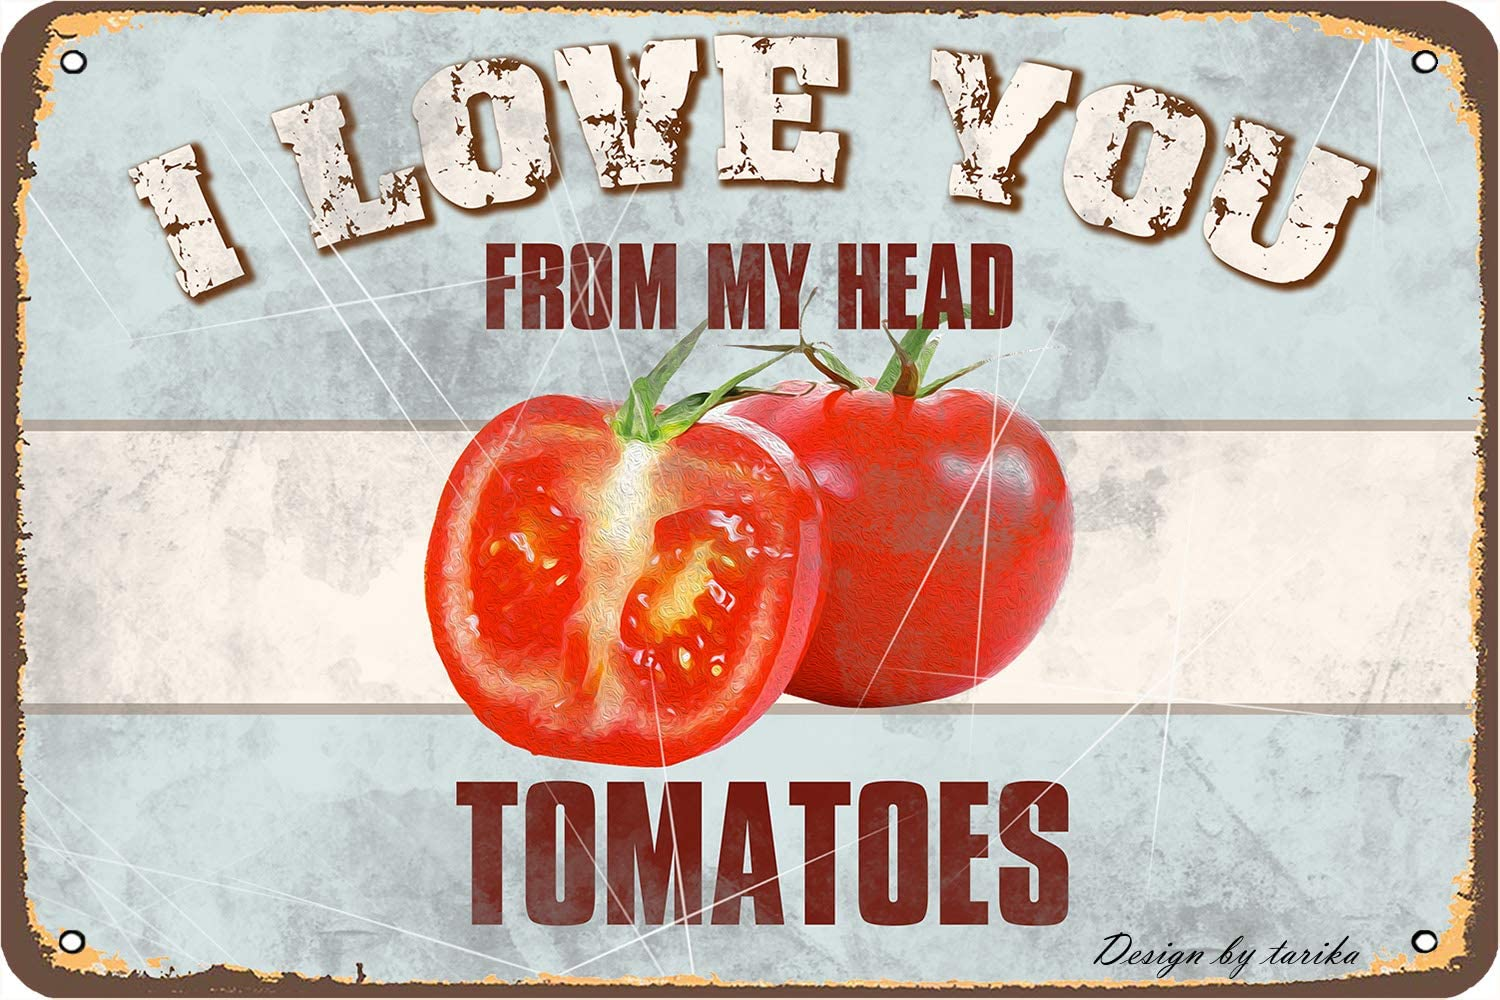 I Love You from My Head Tomatoes Iron Poster Painting Tin Sign Vintage Wall Decor for Cafe Bar Pub Home Beer Decoration Crafts